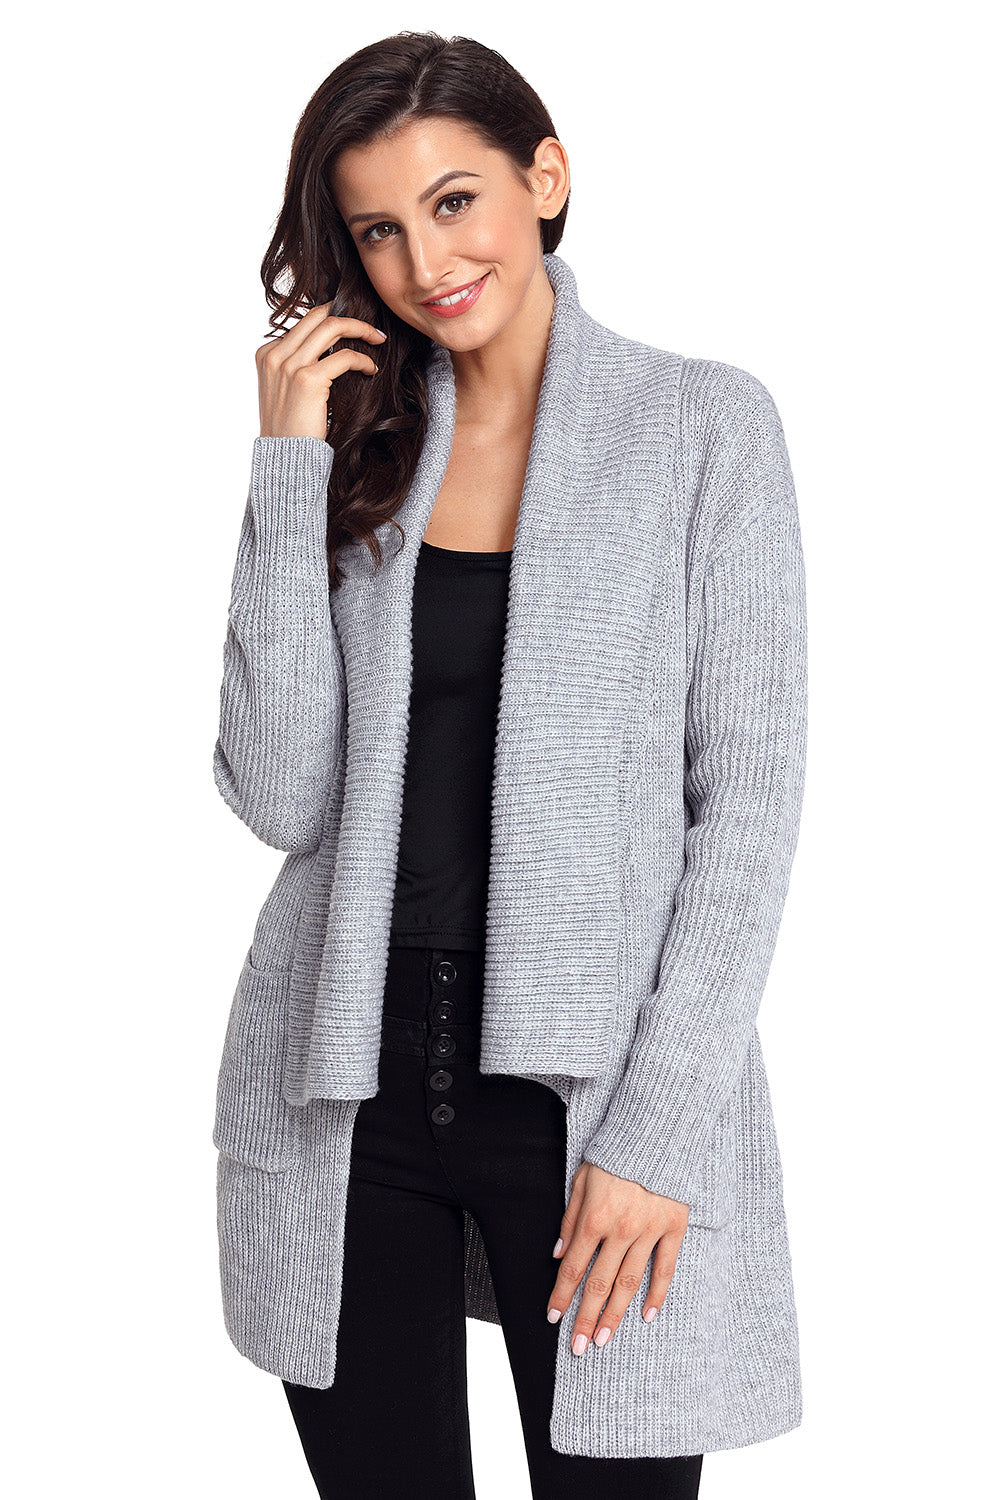 Her Fashion Cream Sweater Black Comfy Cozy Pocketed Women Cardigan